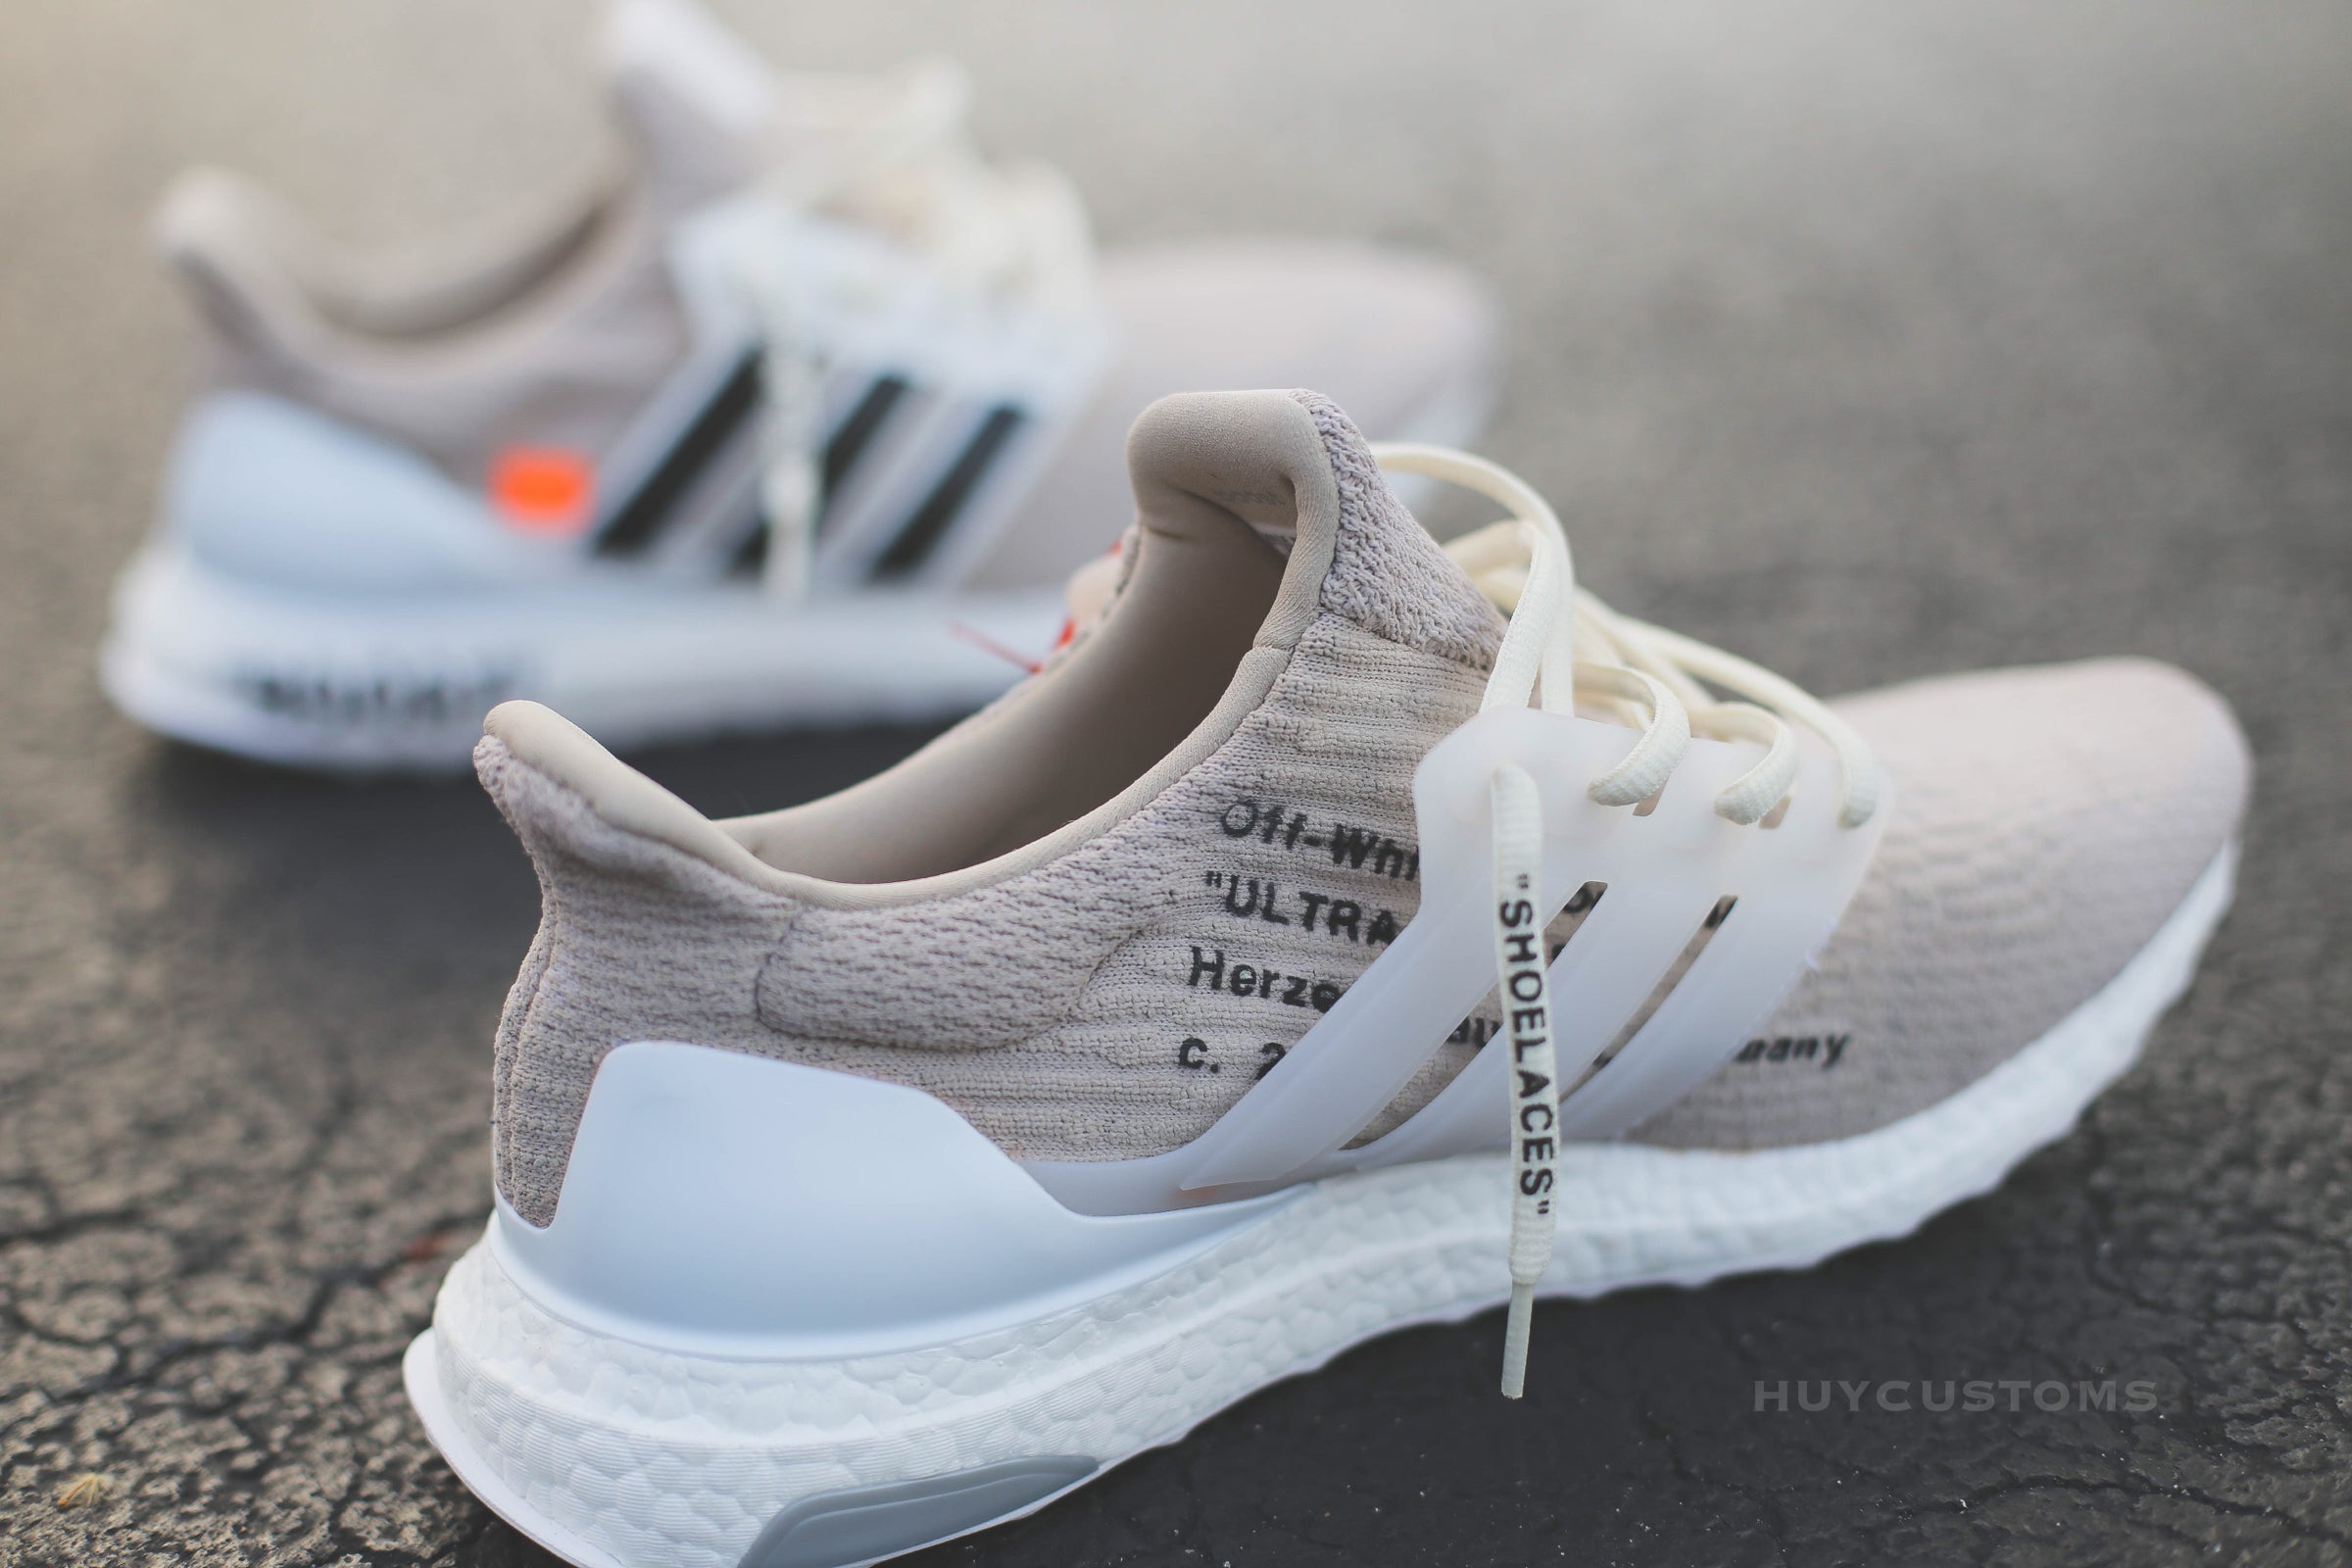 Us Auto Sales Payment >> OFF-White ultra boost custom | Huycustoms